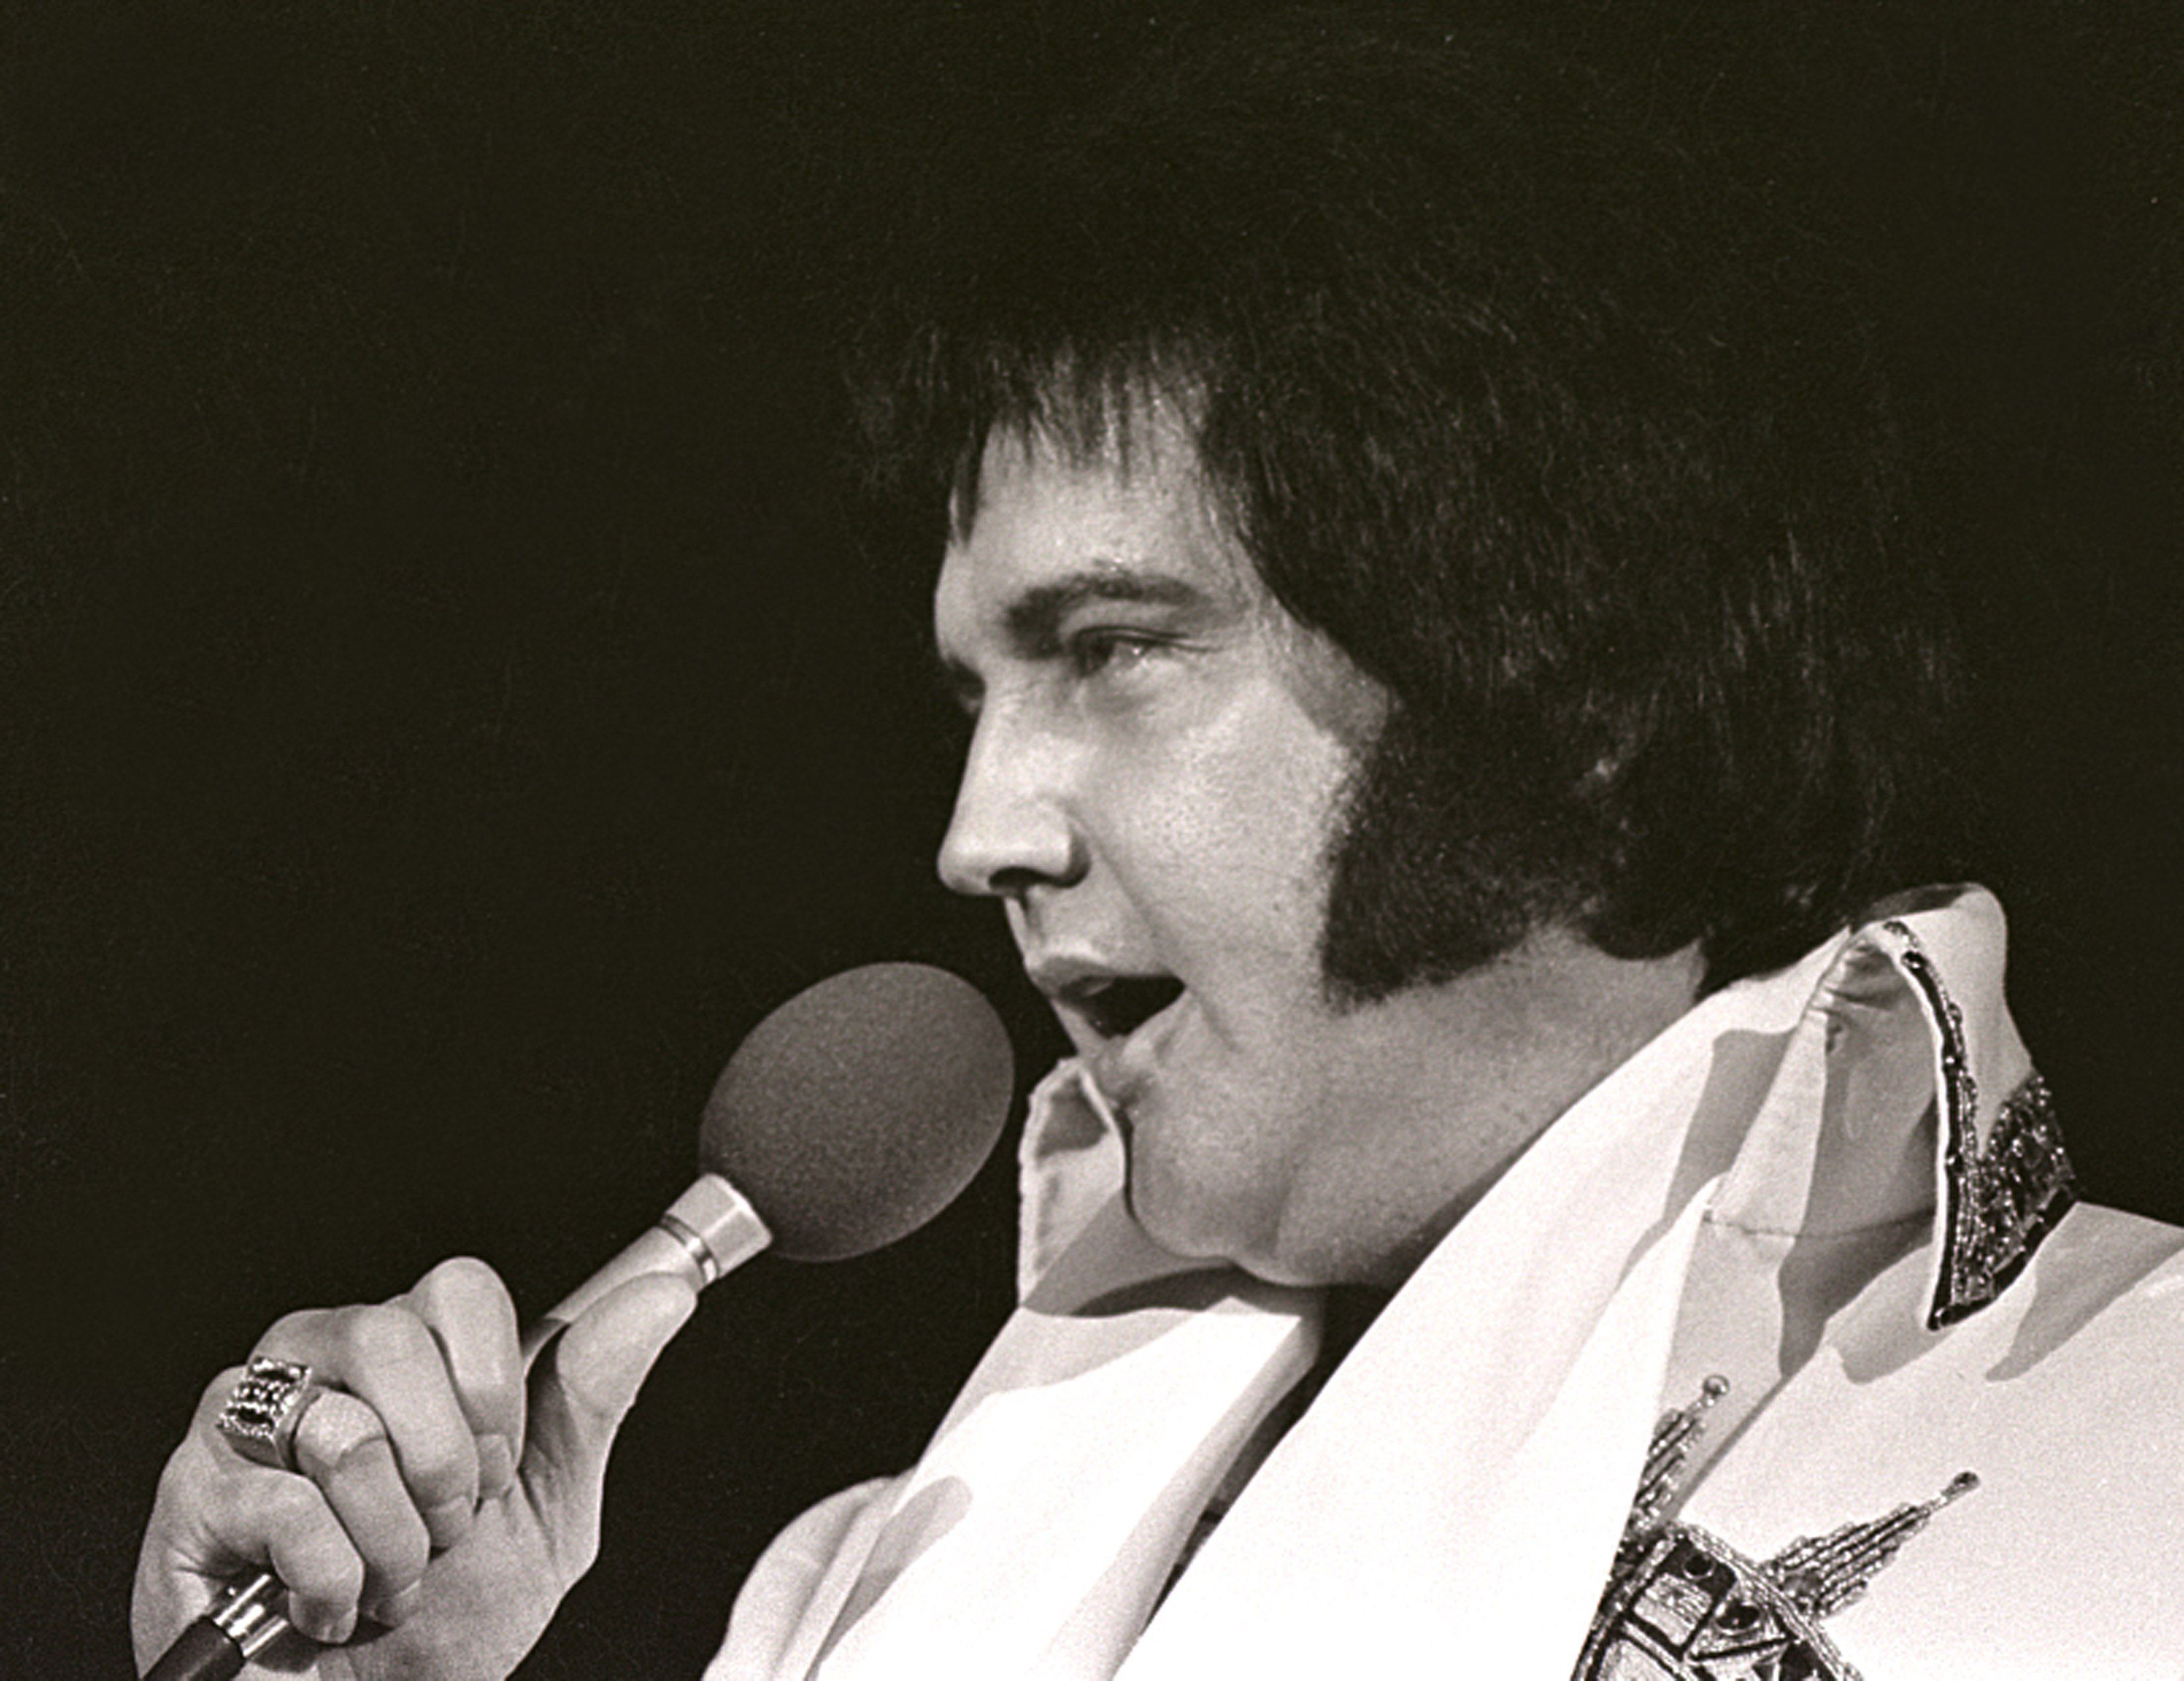 Elvis Presley performs in a concert in Milwaukee, Wisconsin in 1977   Source: Getty Images